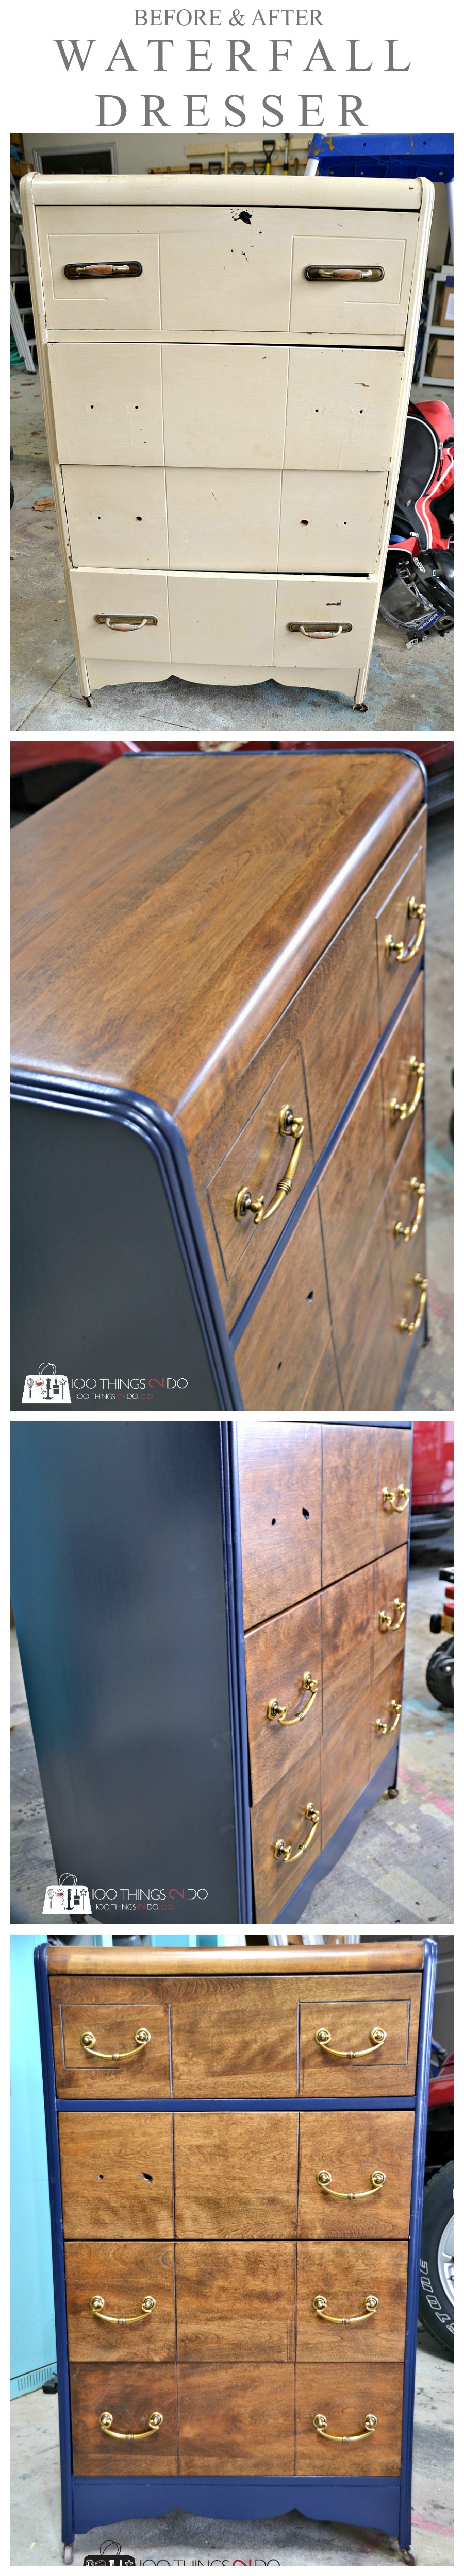 Waterfall Dresser makeover P